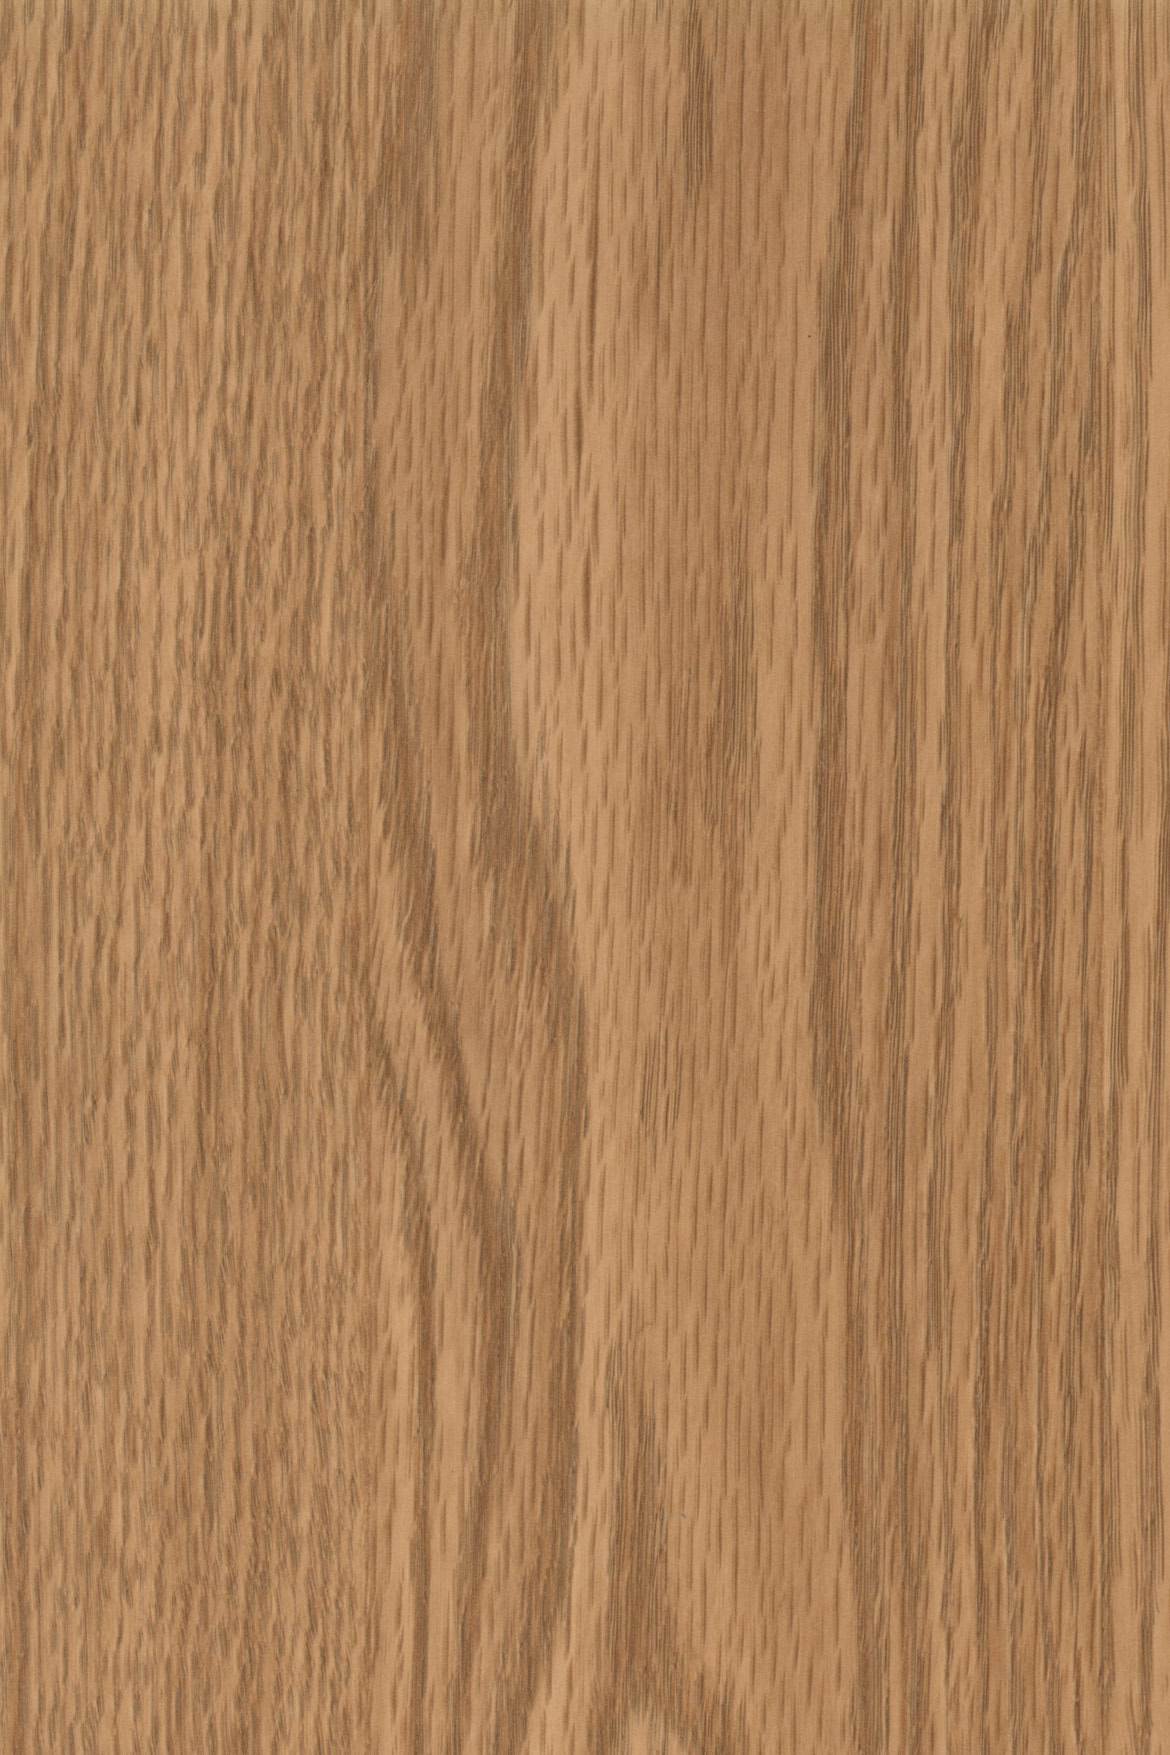 Wood Grain Vinyl Samples